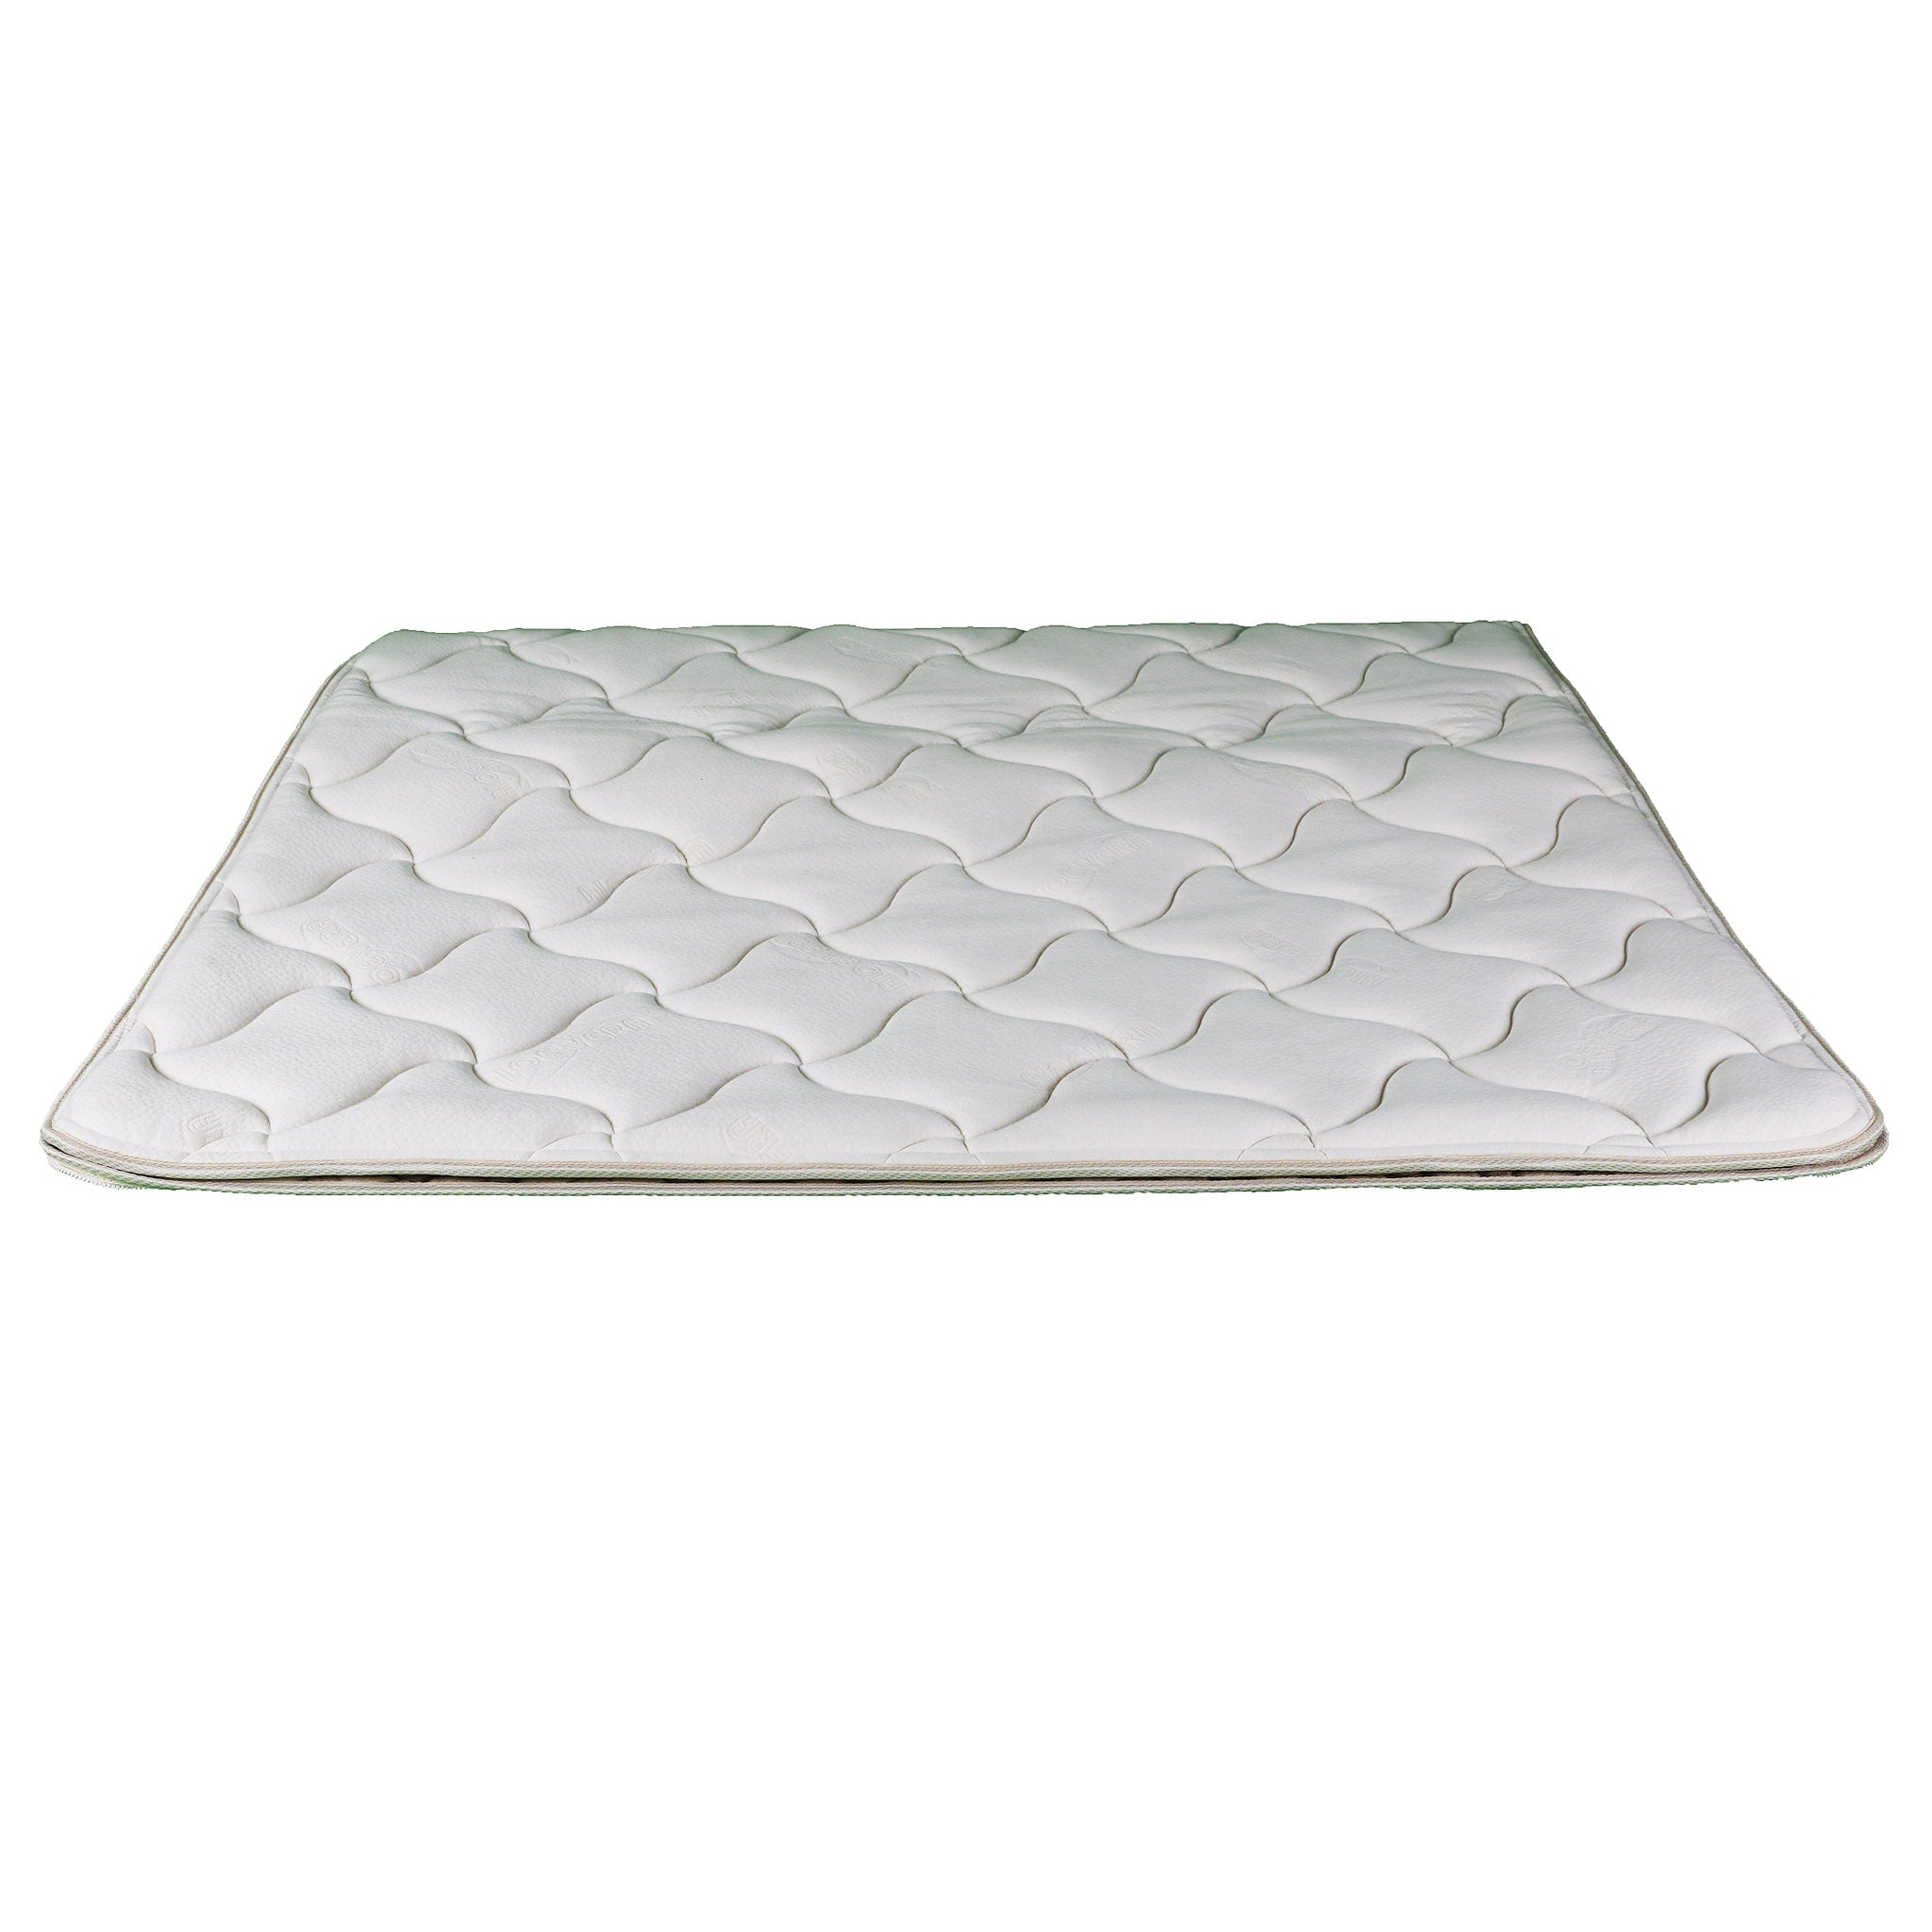 Interchangeable Replacement Zip-on Pillow Top Covers - Sterling Sleep Systems